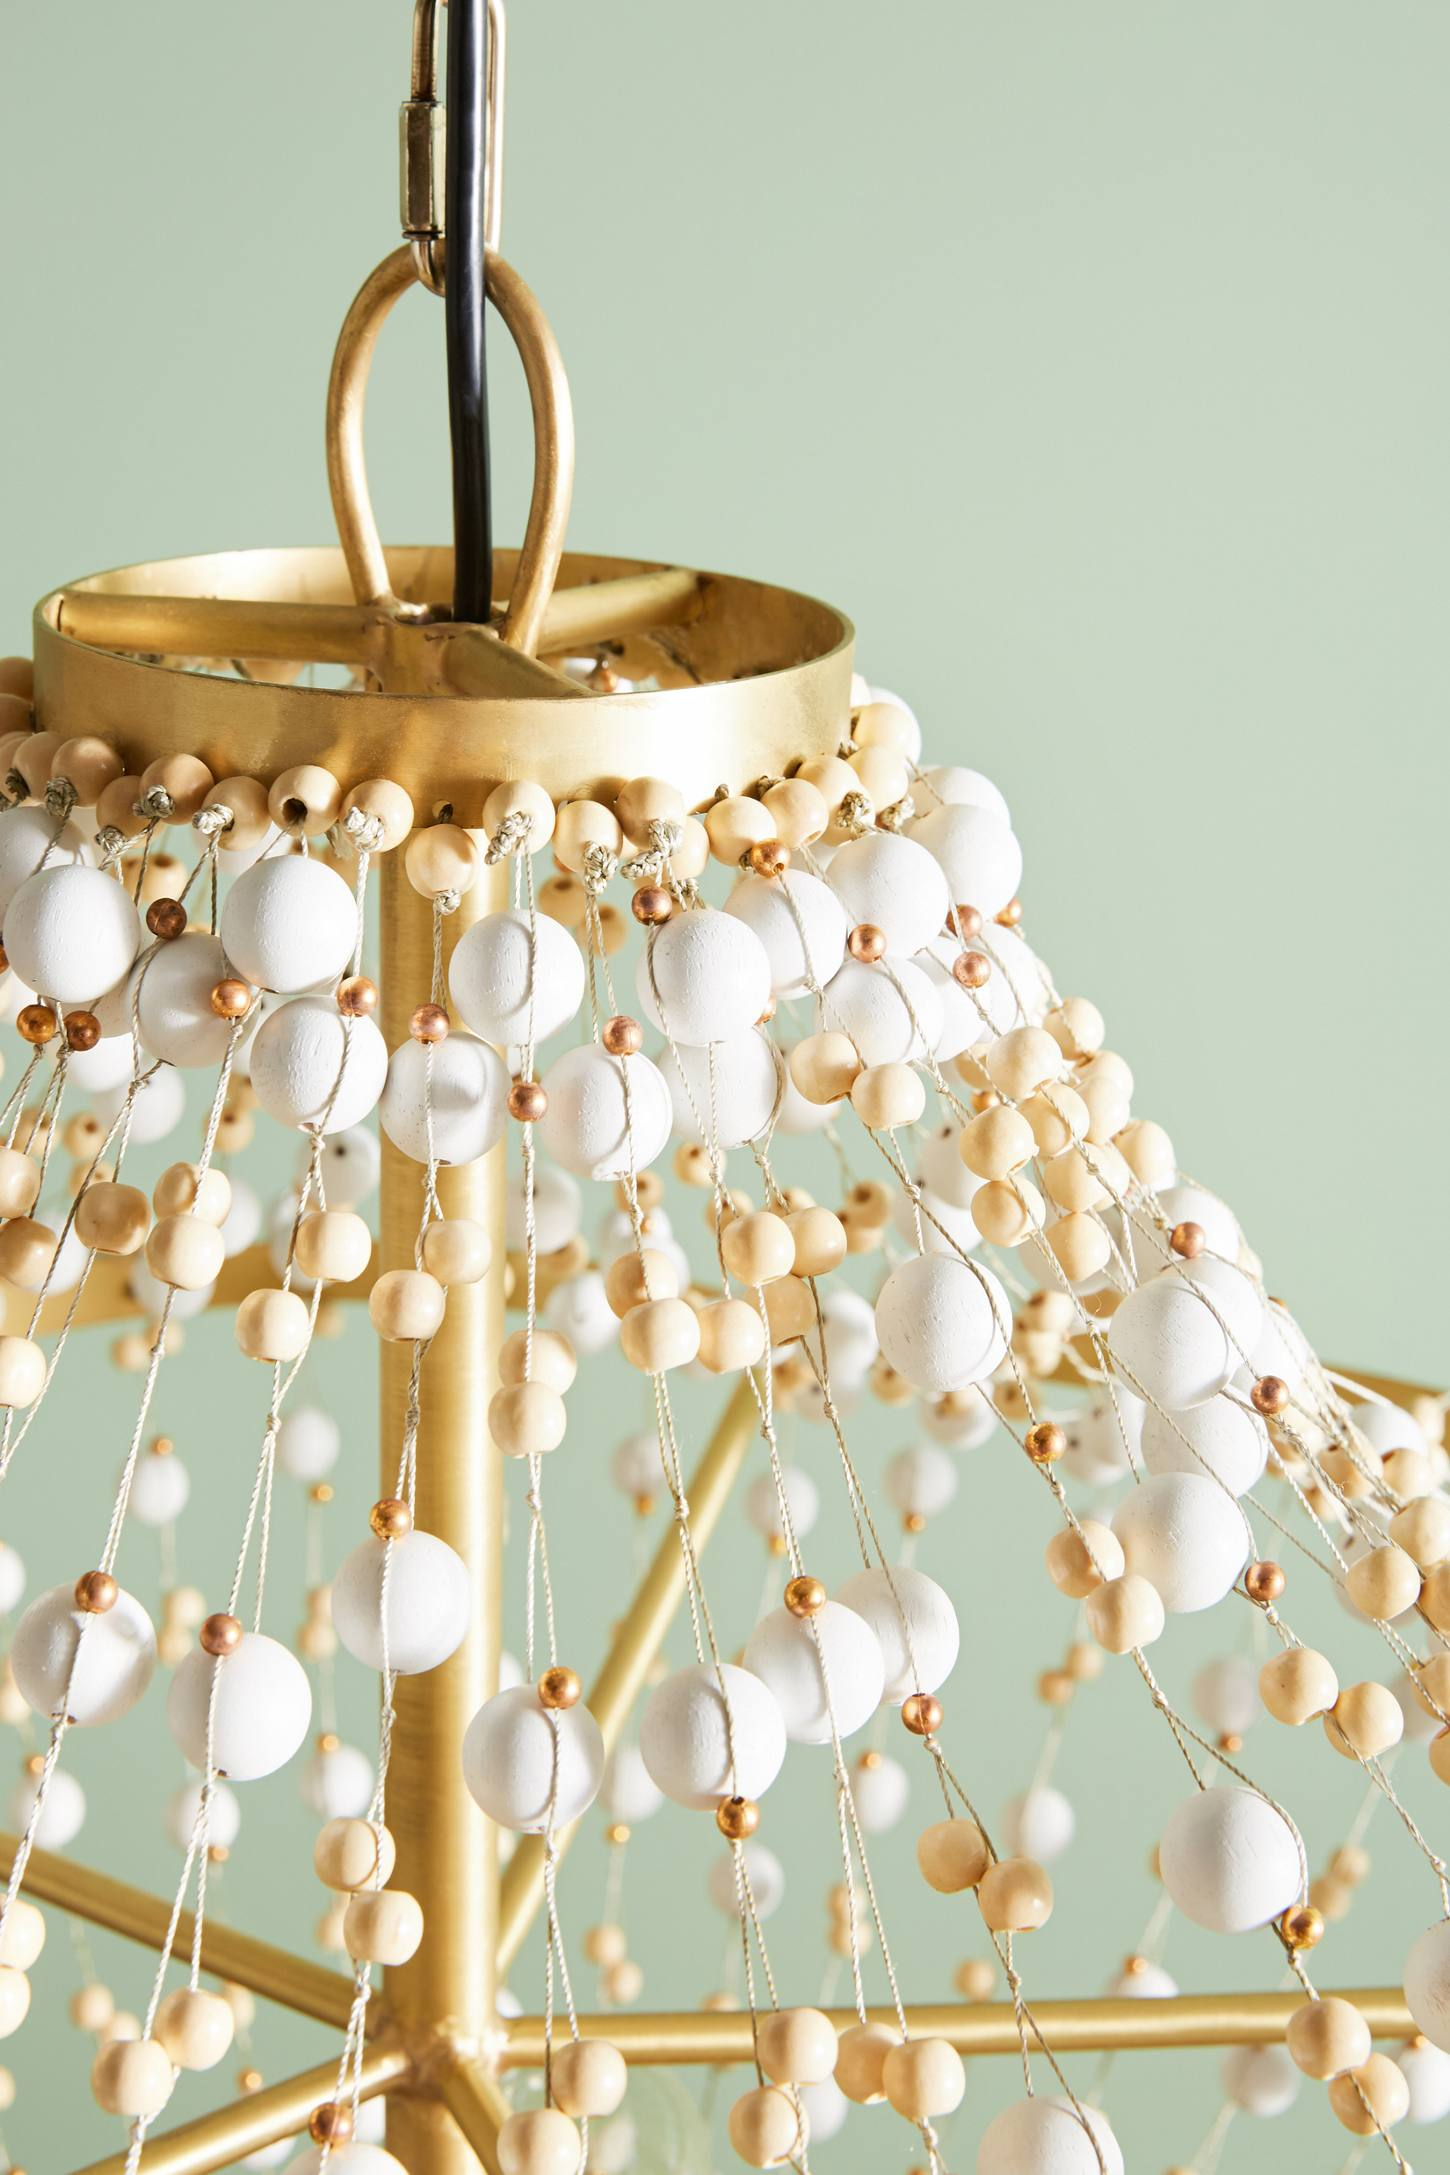 Slide View: 6: Abalorio Chandelier